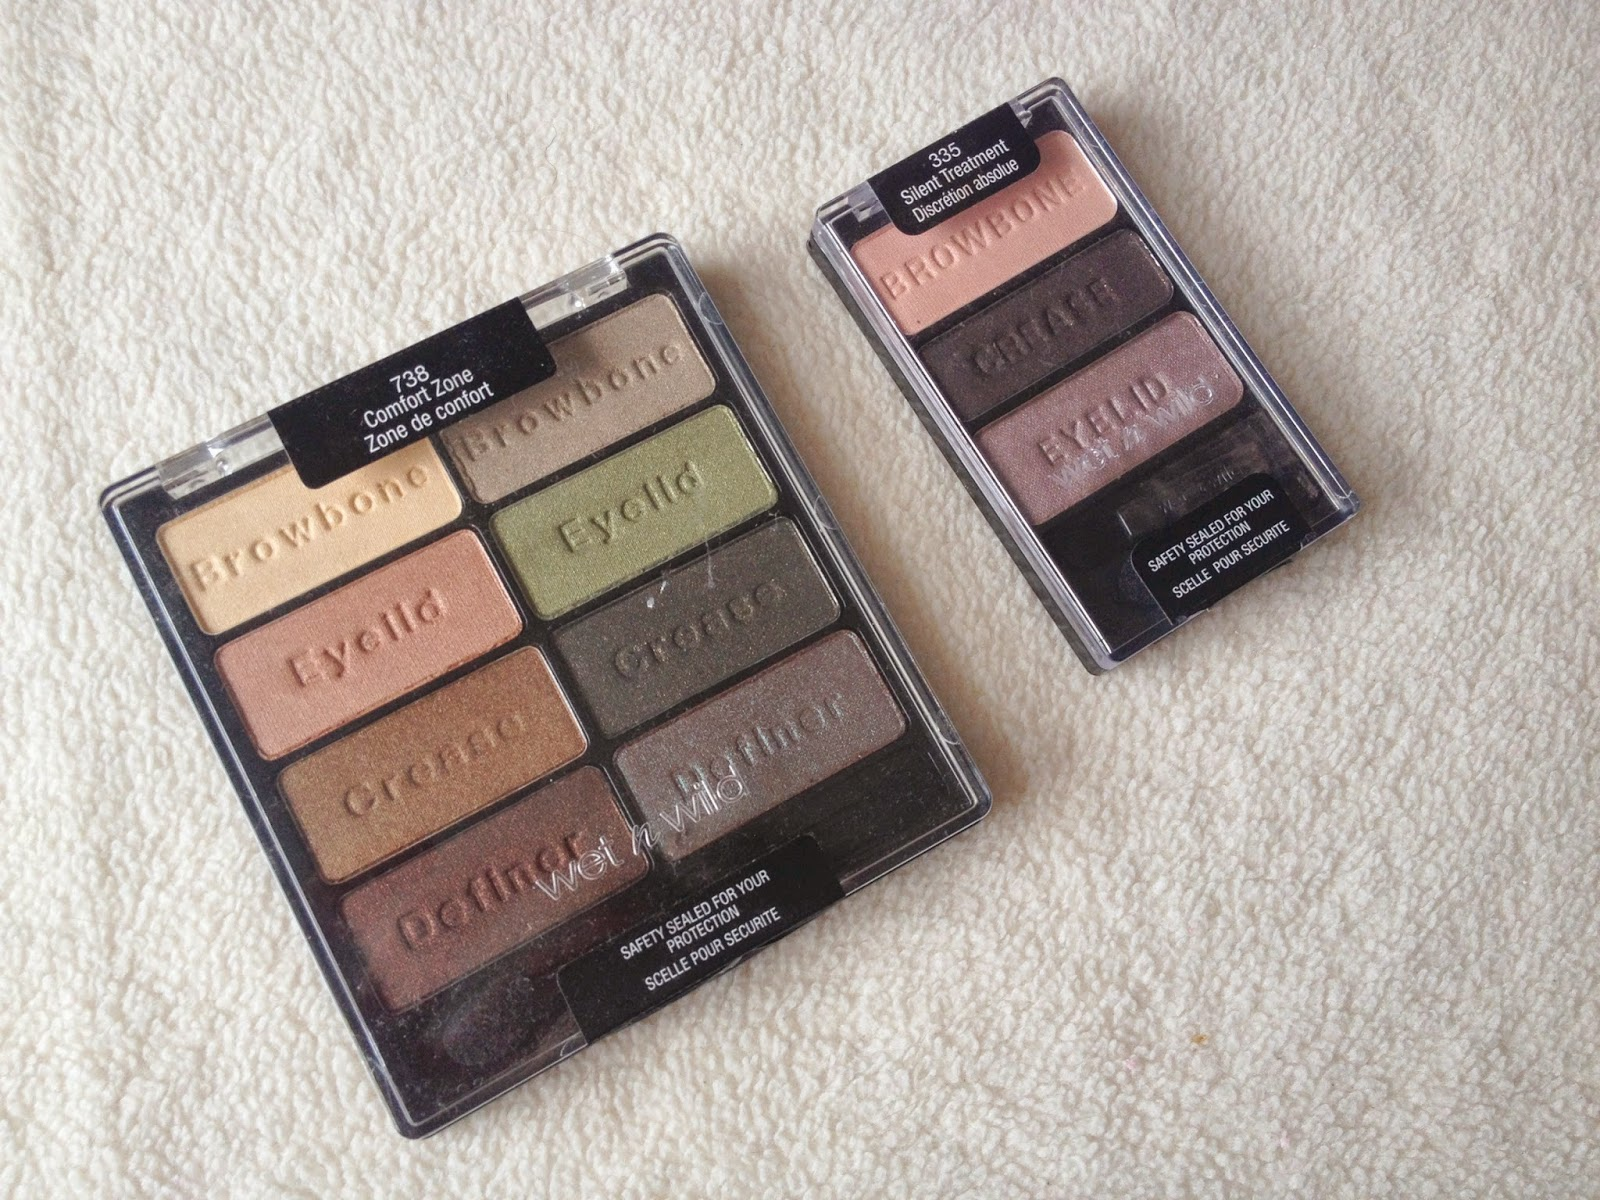 Wet n Wild Palette in Comfort Zone Wet n Wild Trio in Silent Treatment